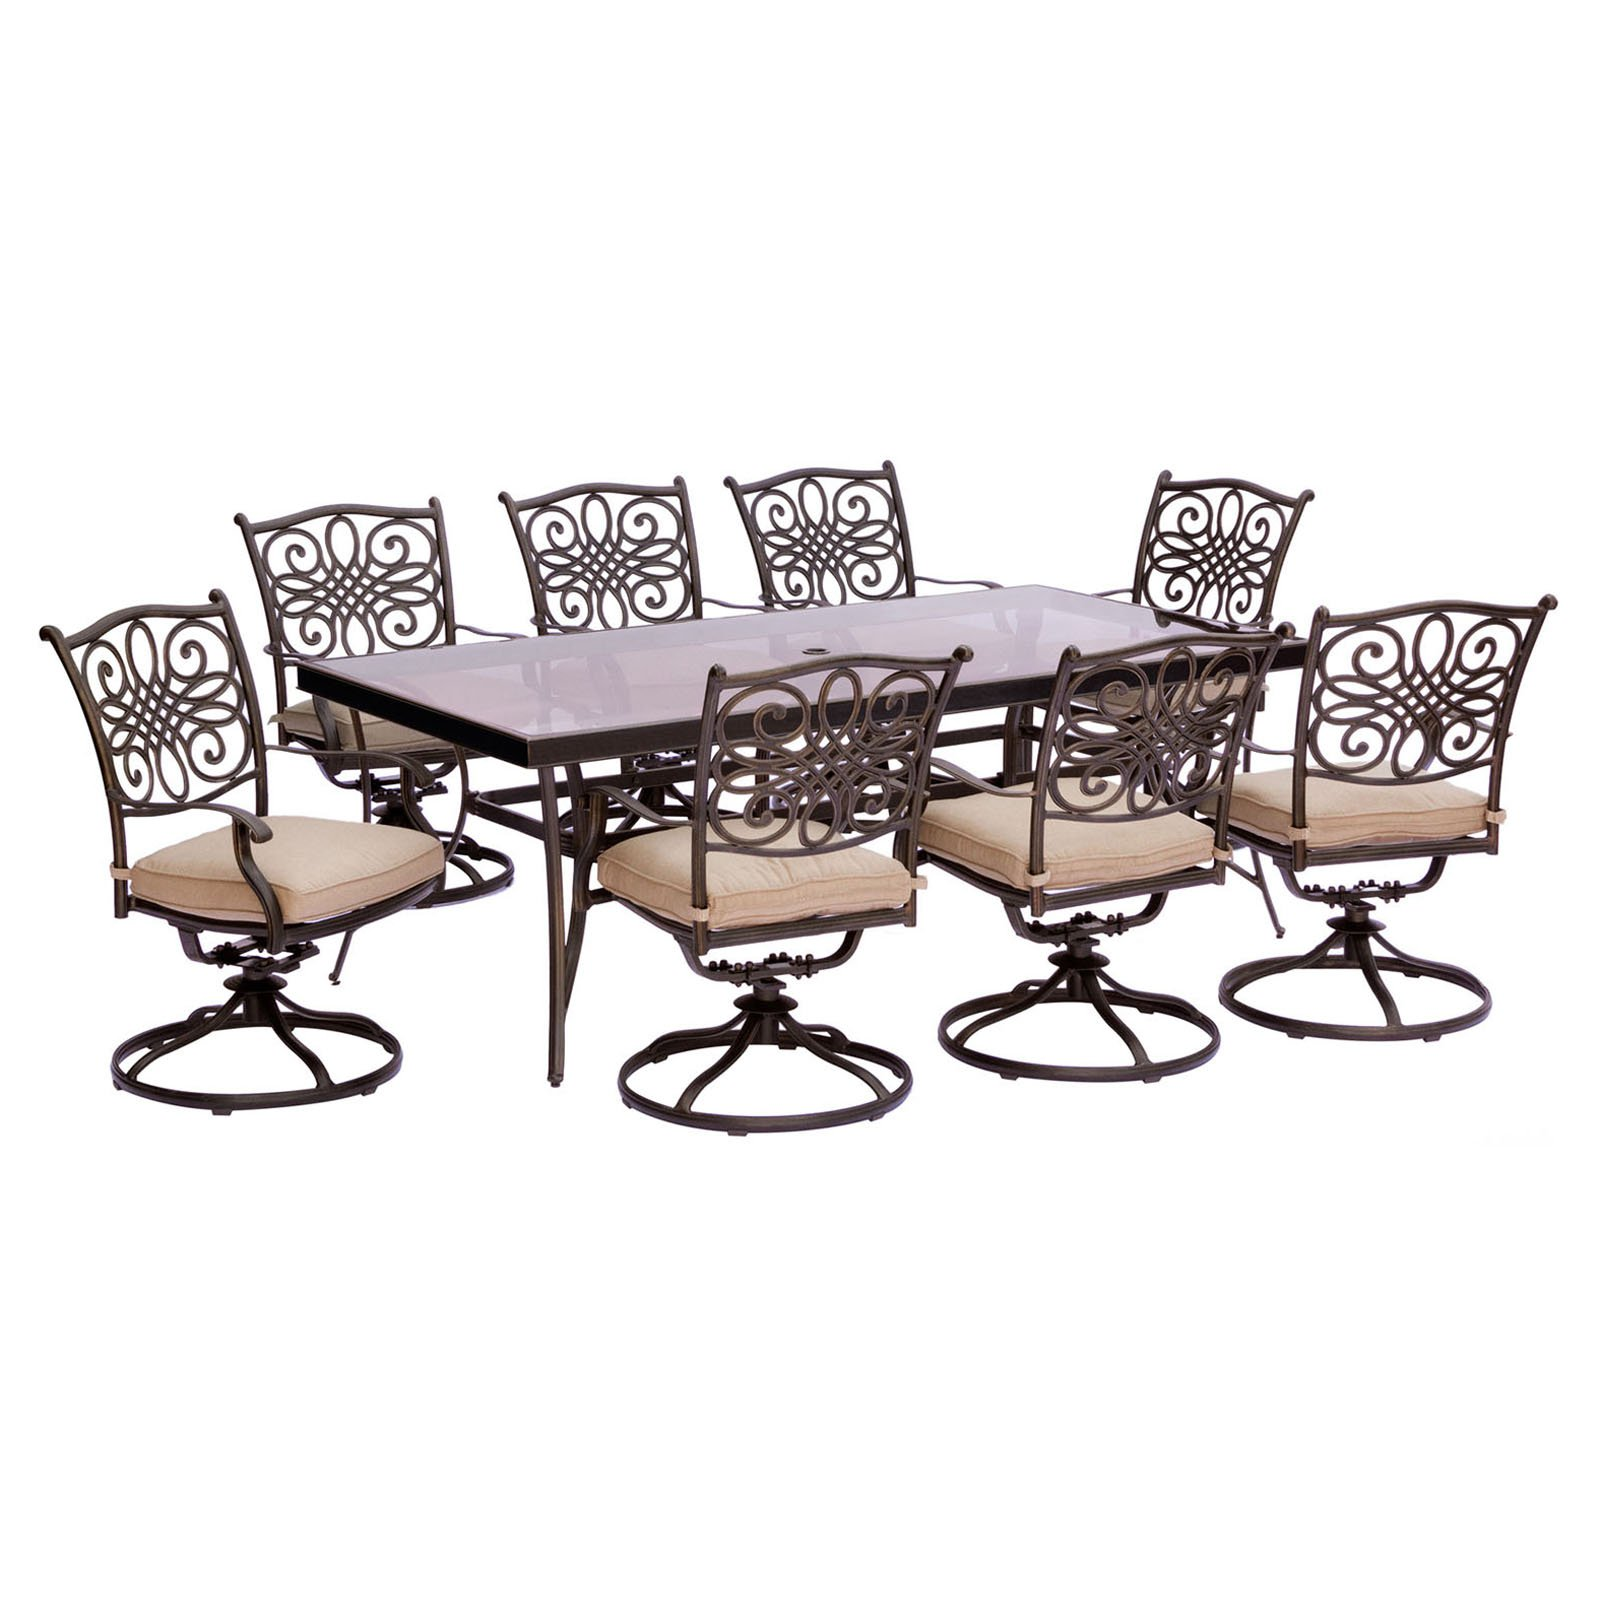 """Hanover Outdoor Traditions 9-Piece Dining Set with 42"""" x 84"""" Glass-Top Table, 8 Swivel Rockers and Umbrella with Stand, Natural Oat"""